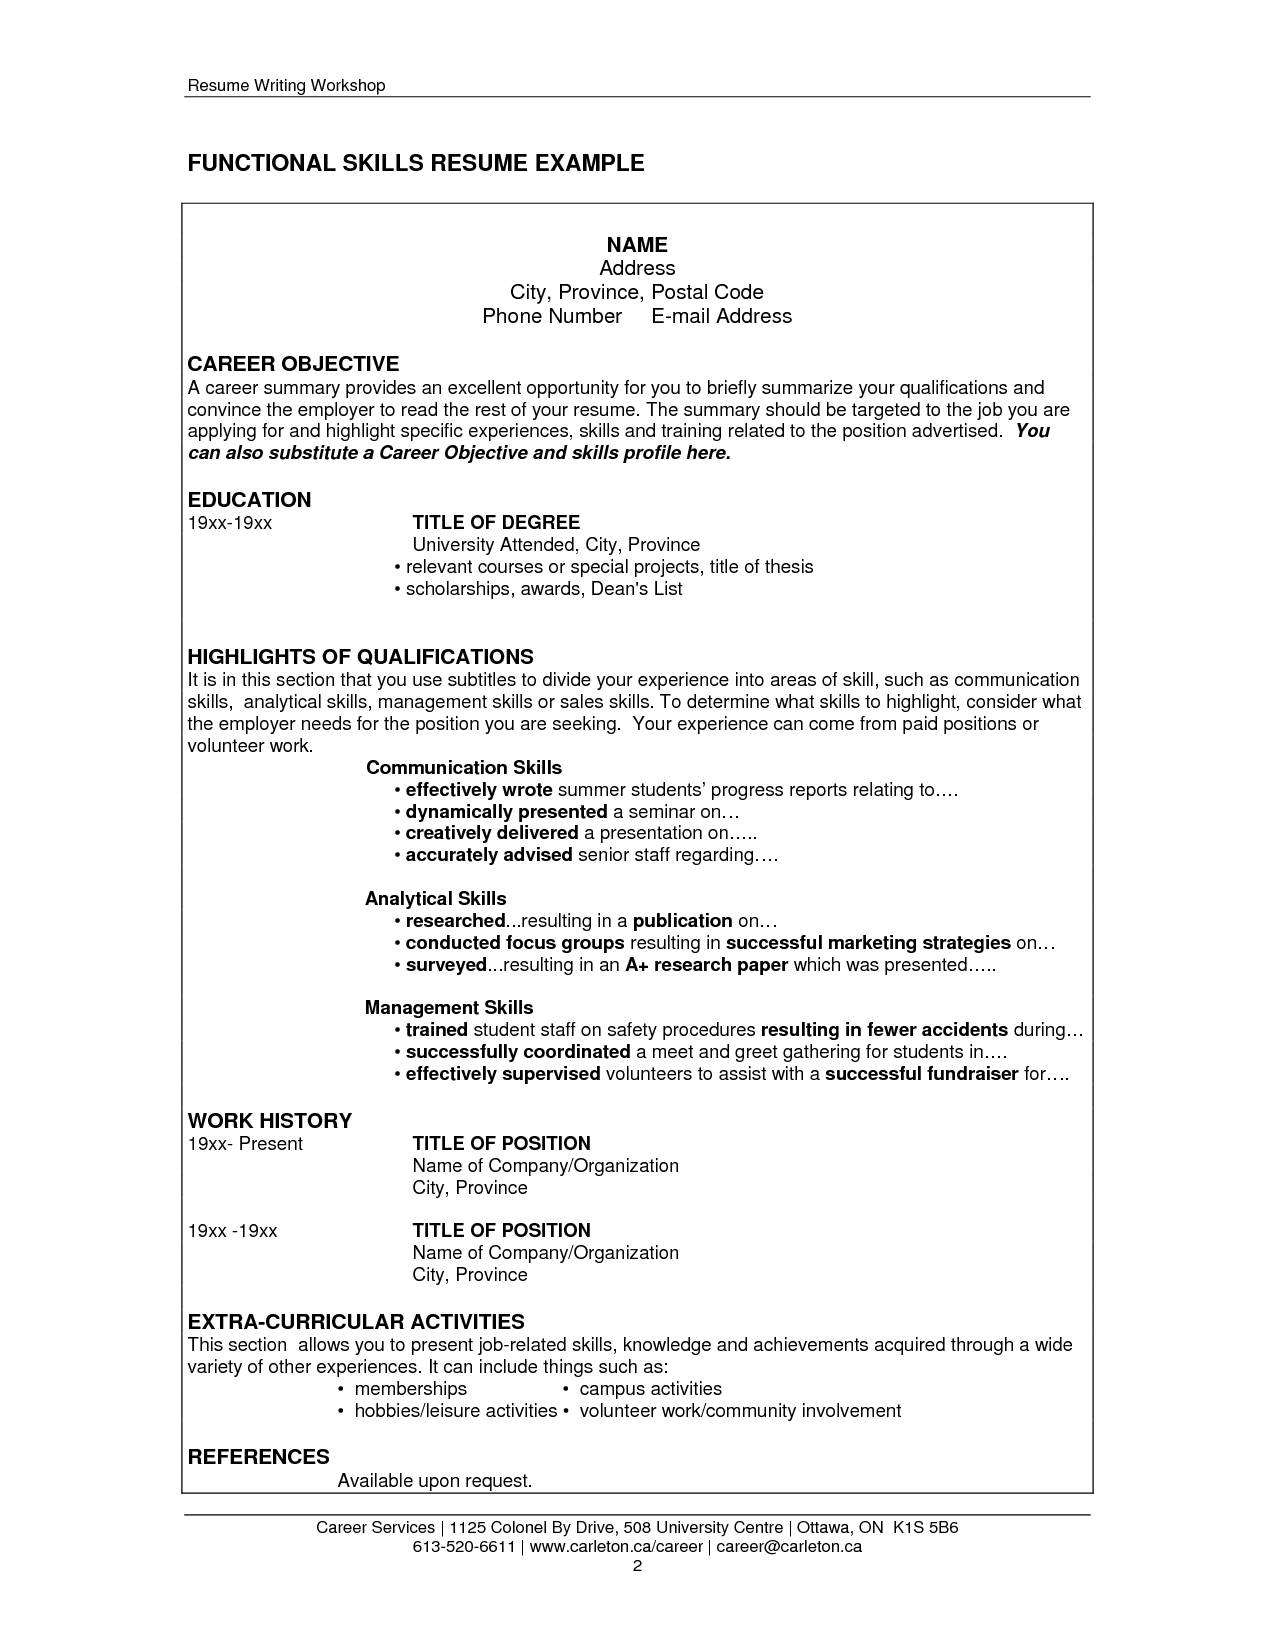 Skills On Resume Examples Resume Skills Section Resume Skills Good Resume Examples